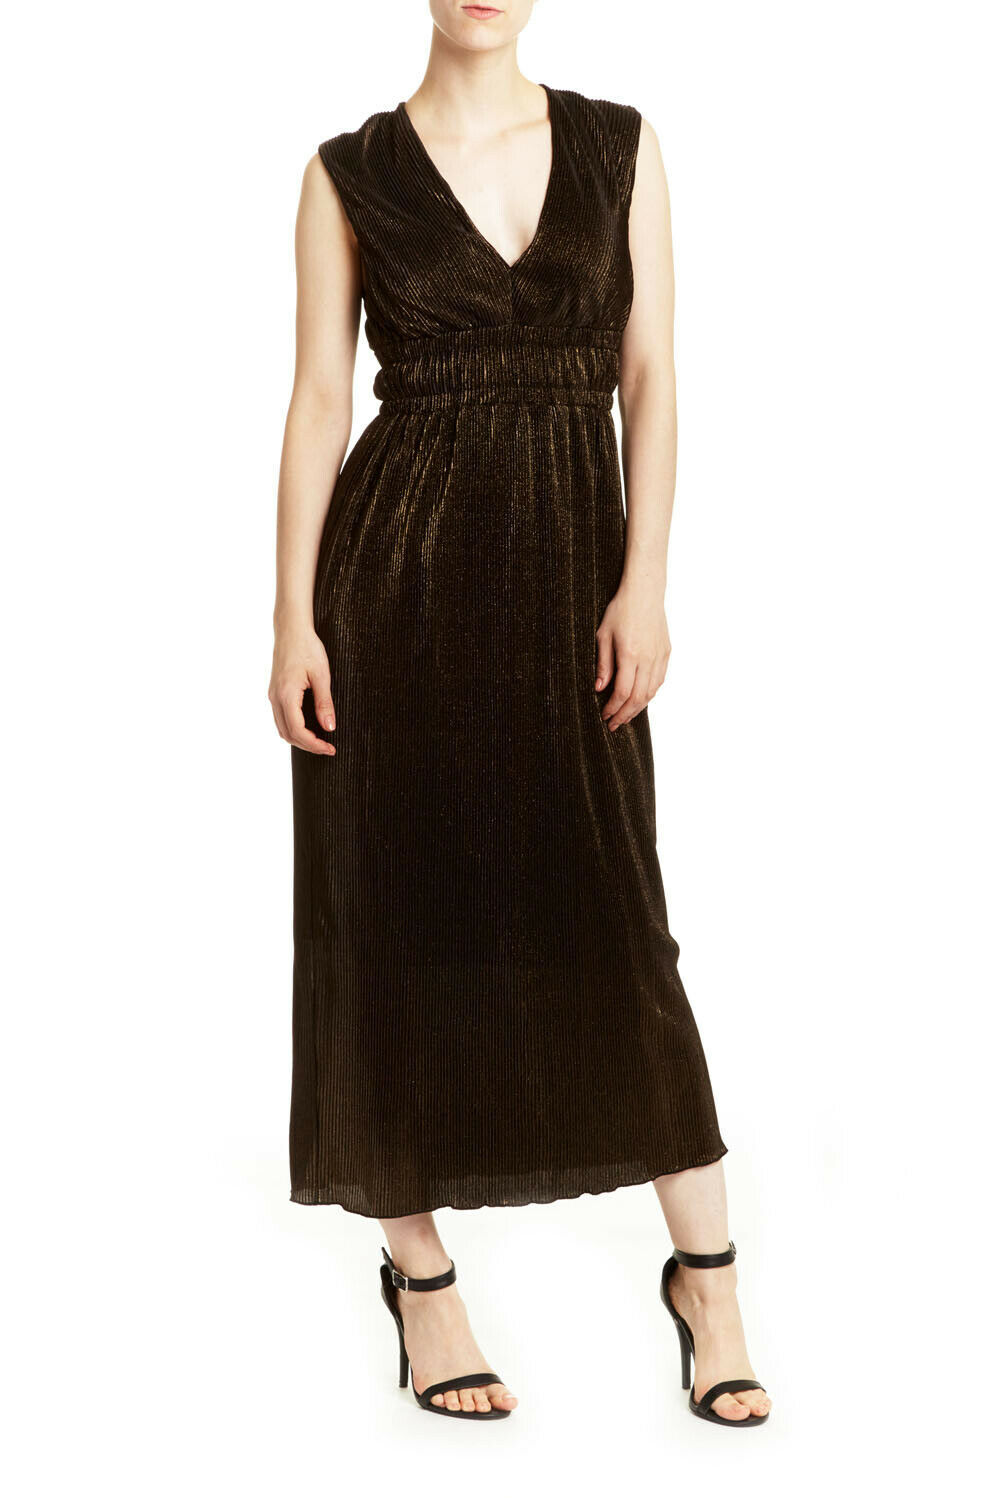 Romeo and Juliet Couture NEW Womens Pleated Metallic Maxi Dress Gold Size M $175